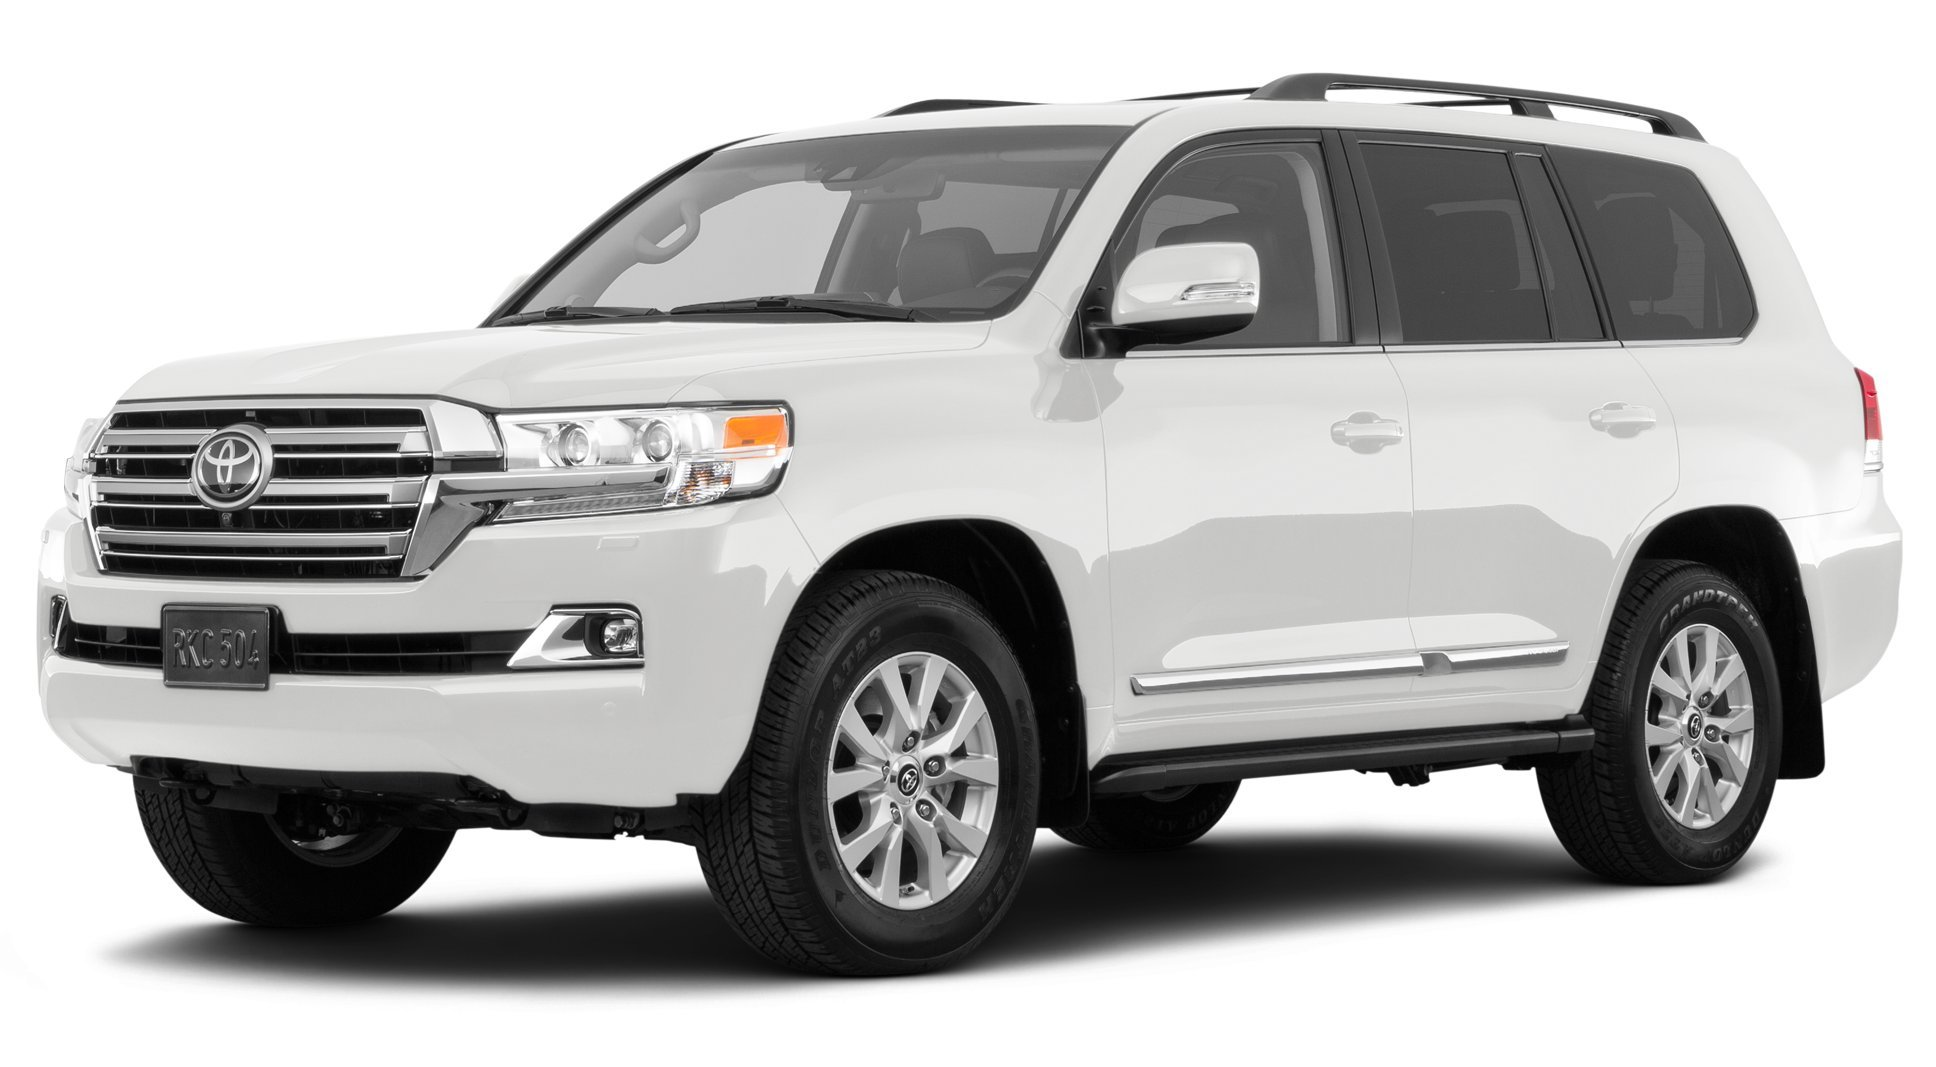 2018 toyota land cruiser reviews images and specs vehicles. Black Bedroom Furniture Sets. Home Design Ideas